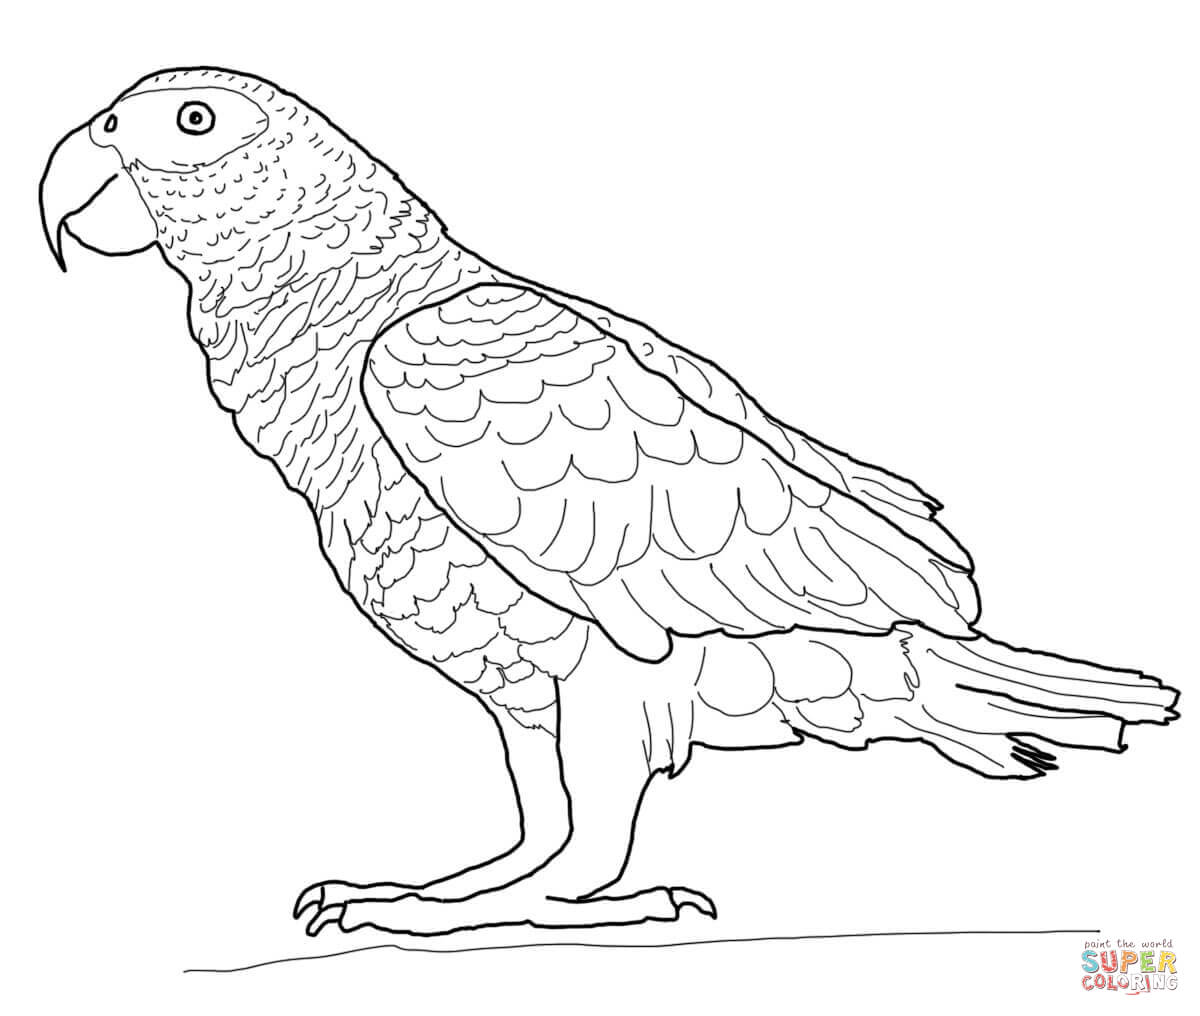 1200x1016 Free Parrot Coloring Pages 0 On Coloring Pages With Parrot